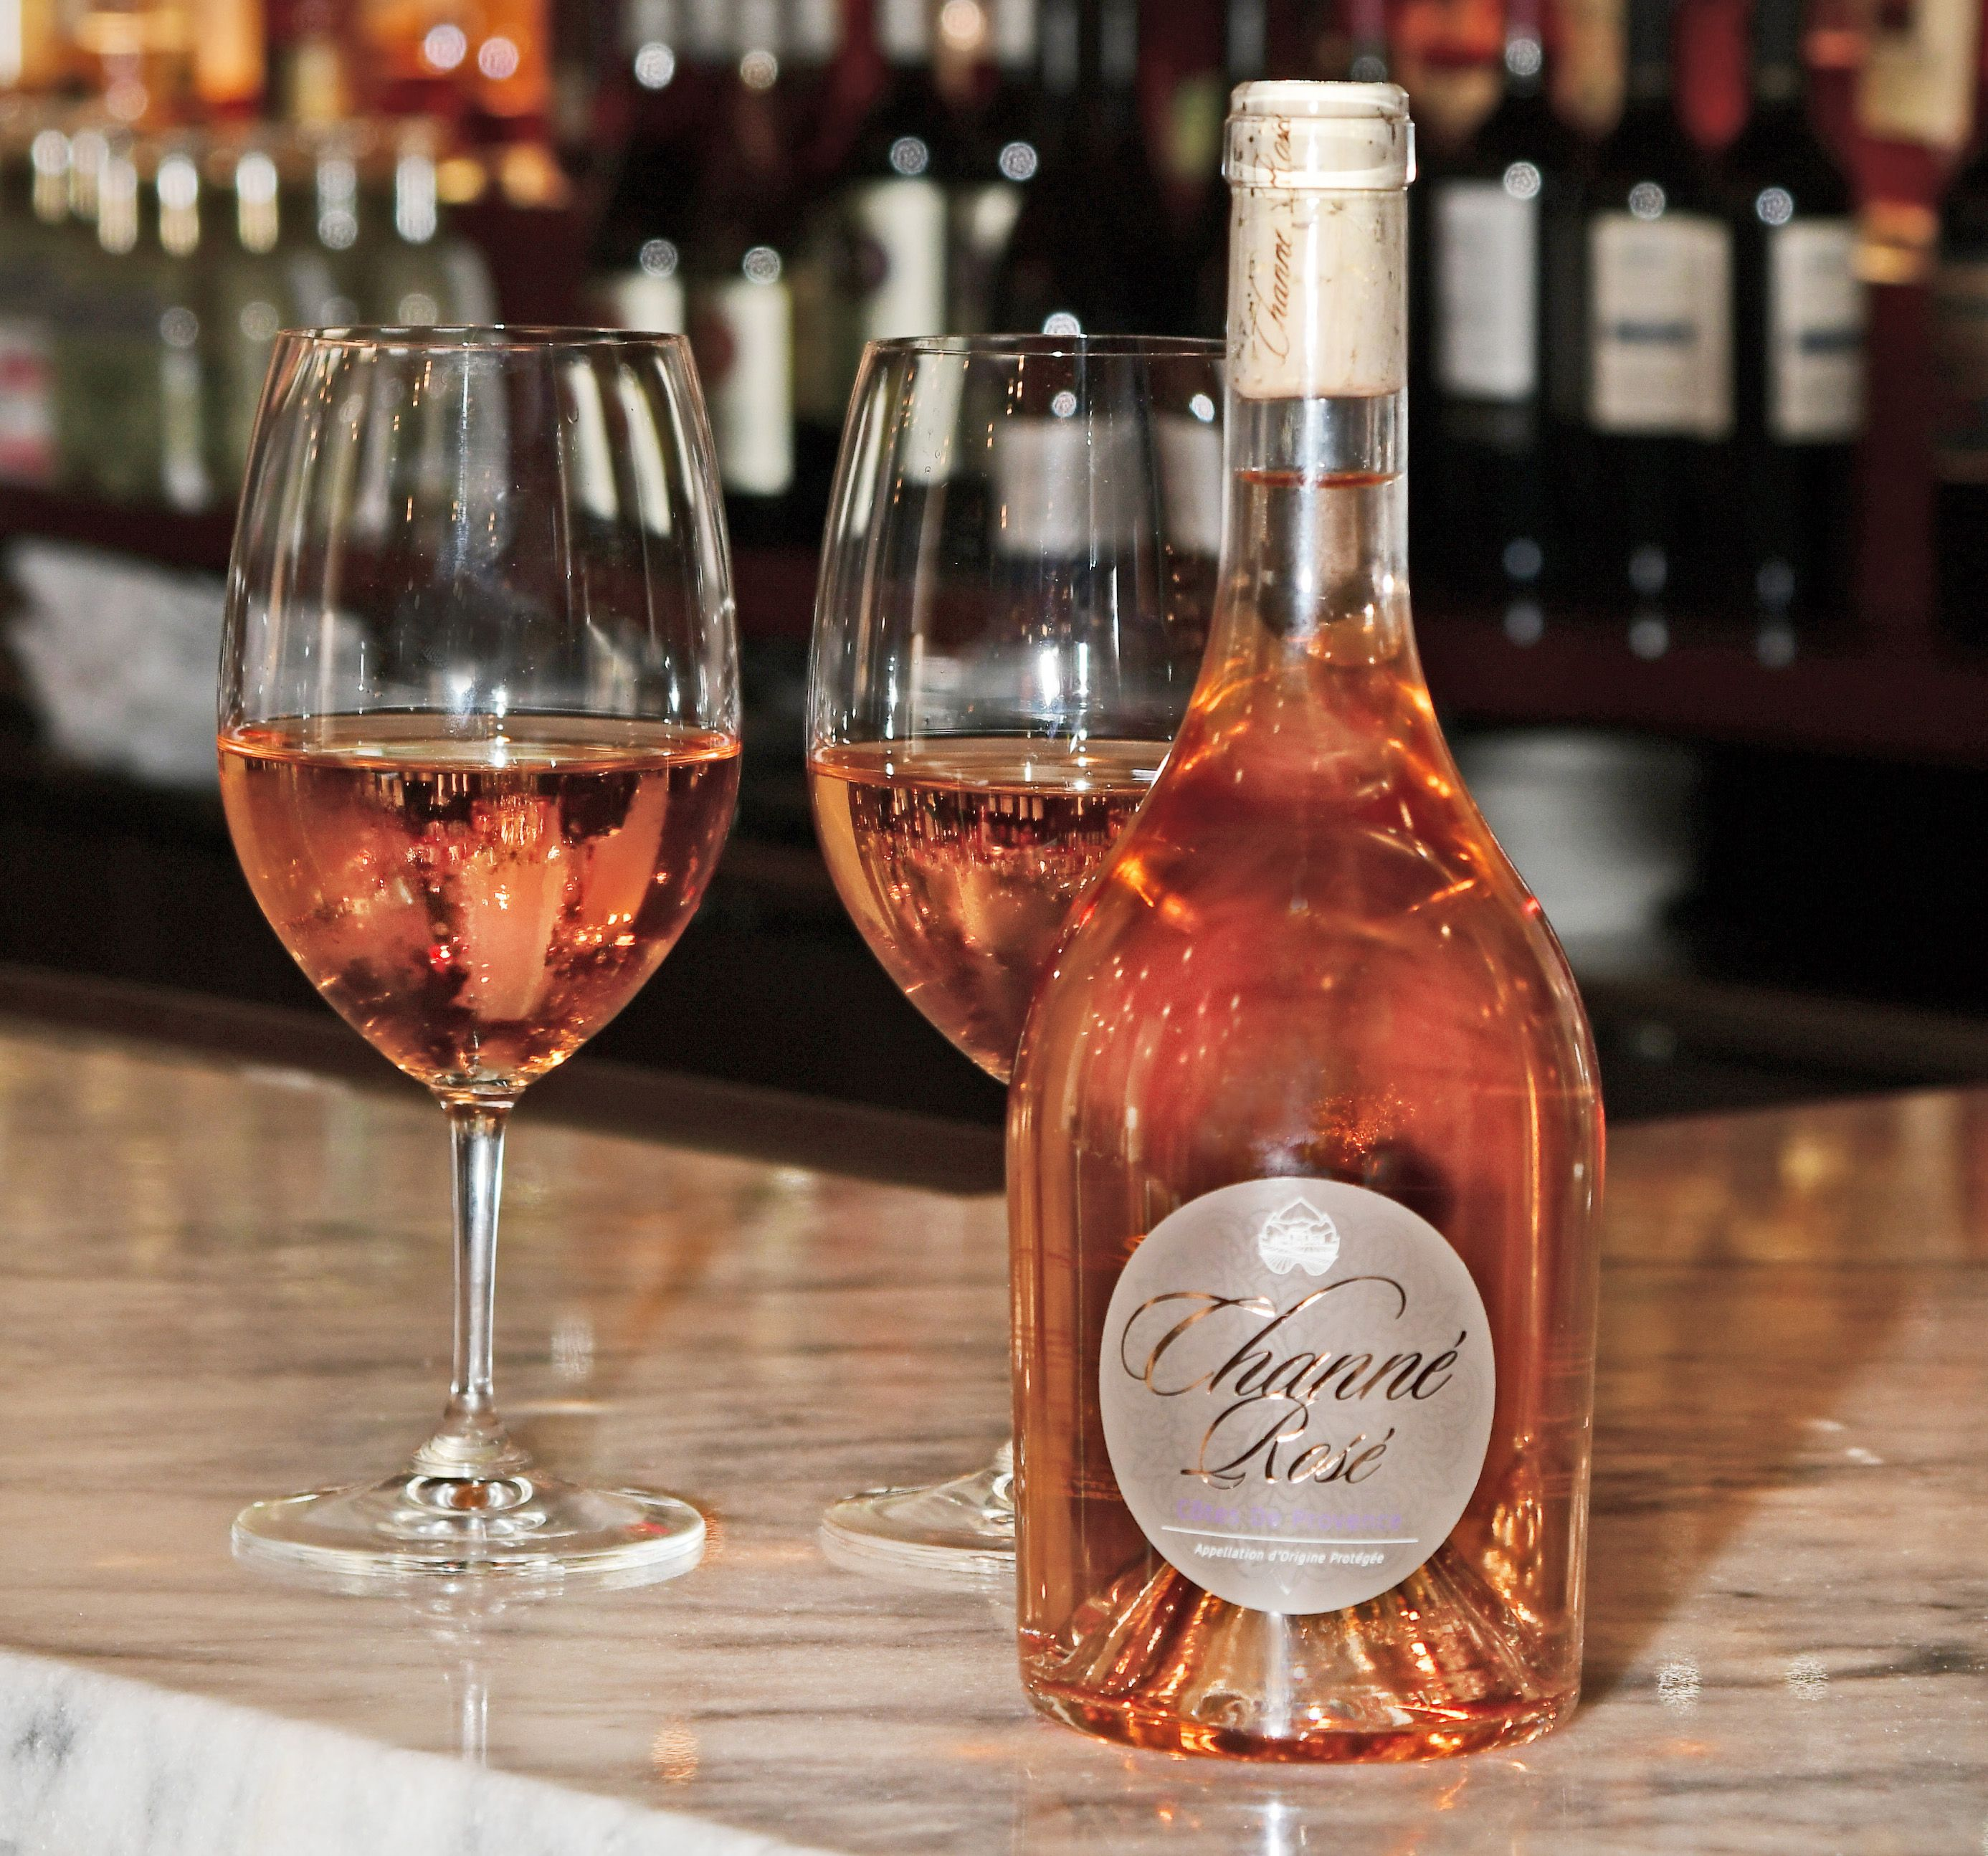 Channe Rose Is Now Being Served At Buckhead Life Restaurant Group Locations Across South Florida Find Florida Restaurants Boca Raton Restaurants Restaurant